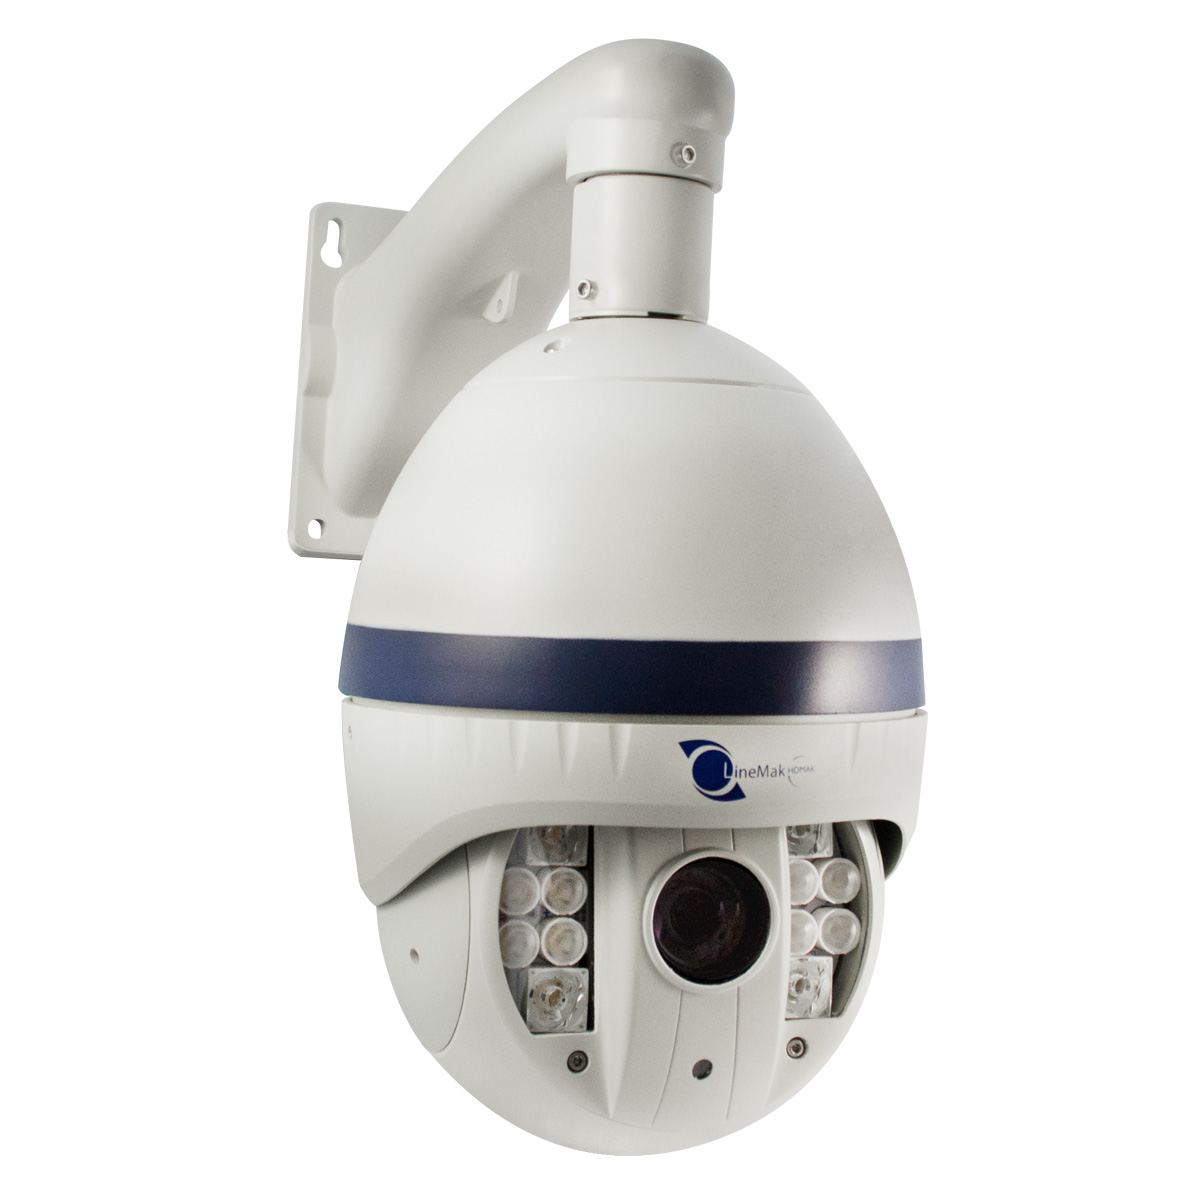 Linemak HD-MAK IP PTZ camera 1/2.8 SONY CCD 2MP 12 LED IP66 IK6 PoE